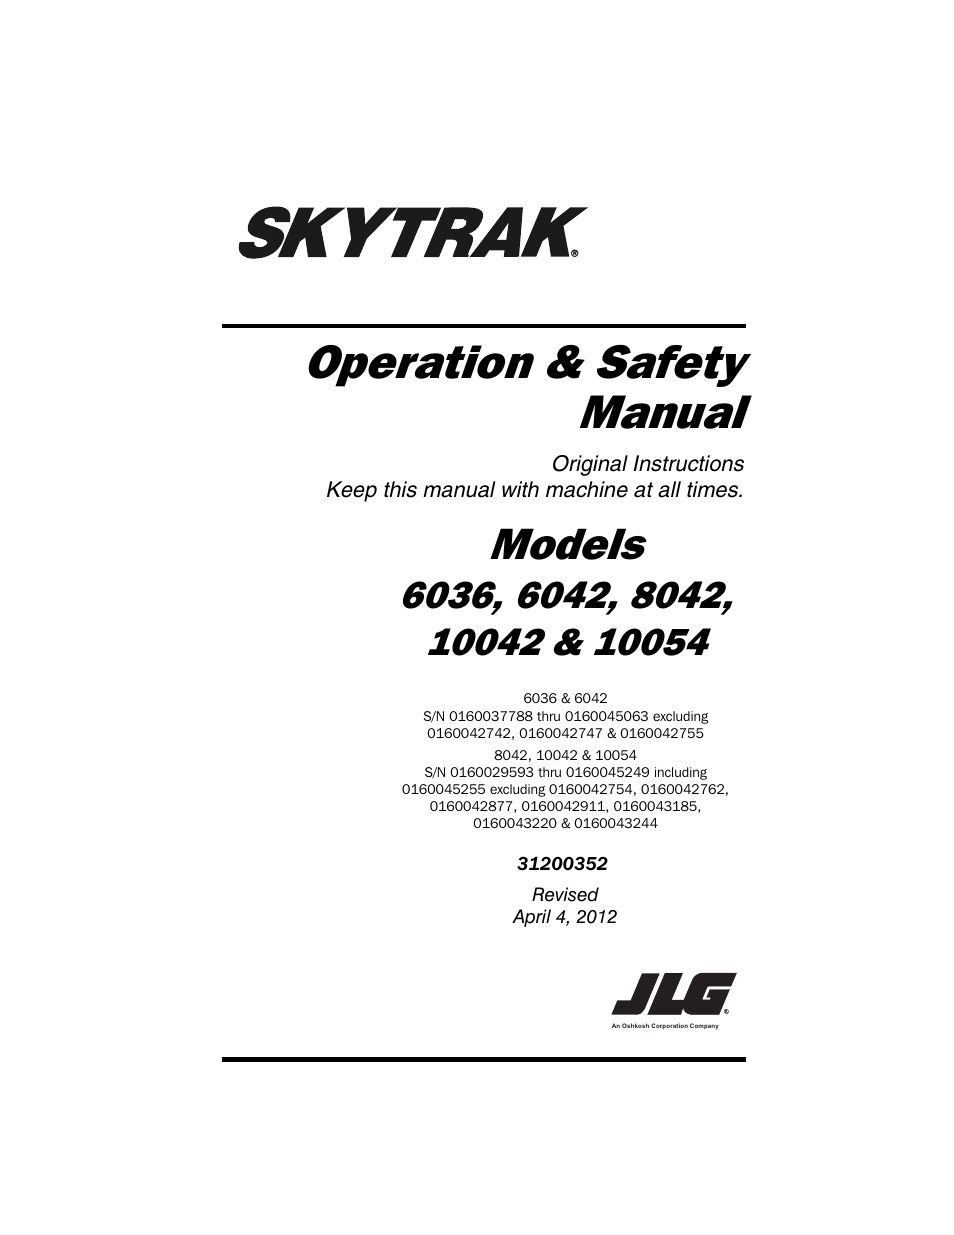 SkyTrak 10054 Operation Manual User Manual 170 pages – Operation Manual